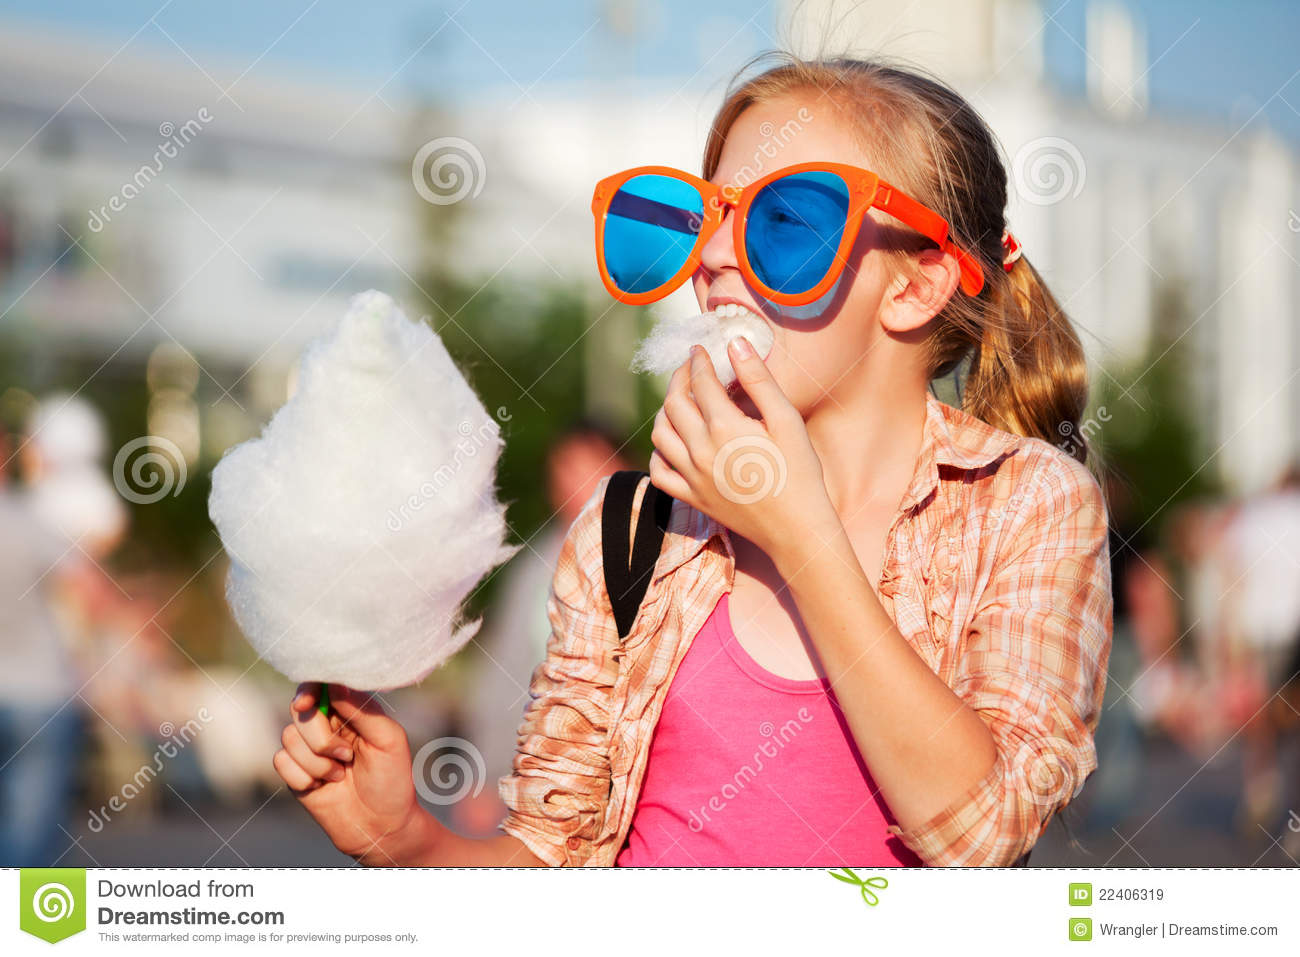 Download Fashion Teen Girl Eating Cotton Candy Walking In City Street Stock Image - Image of candy, cute: 22406319